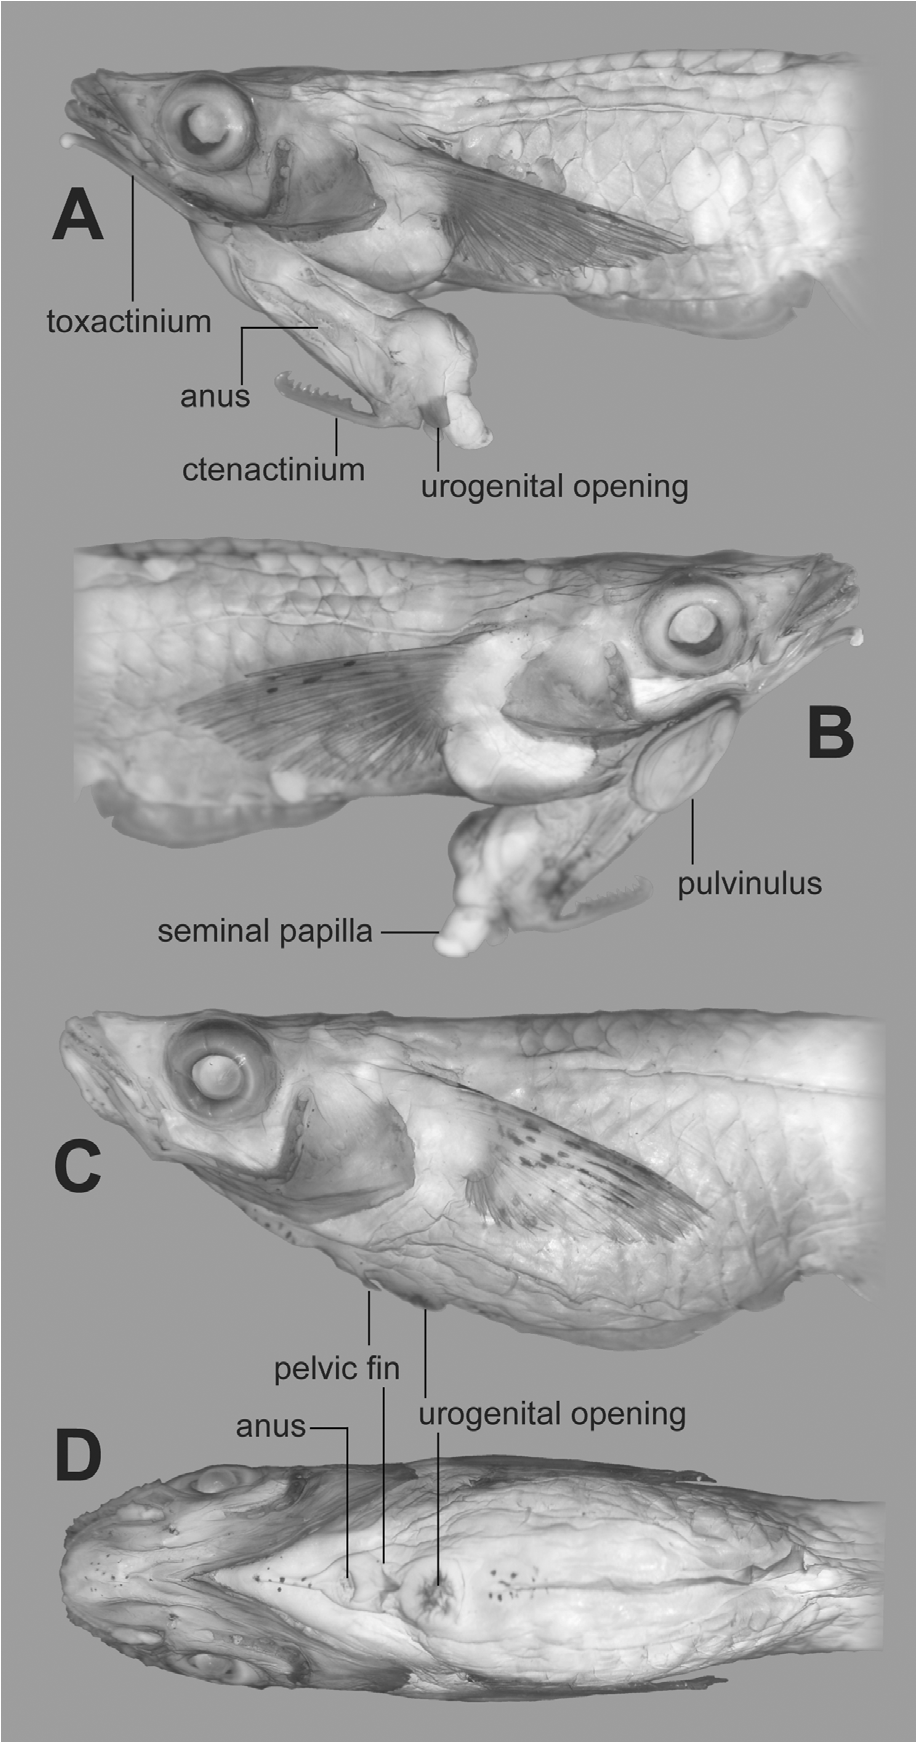 Phallostethus cuulong fish